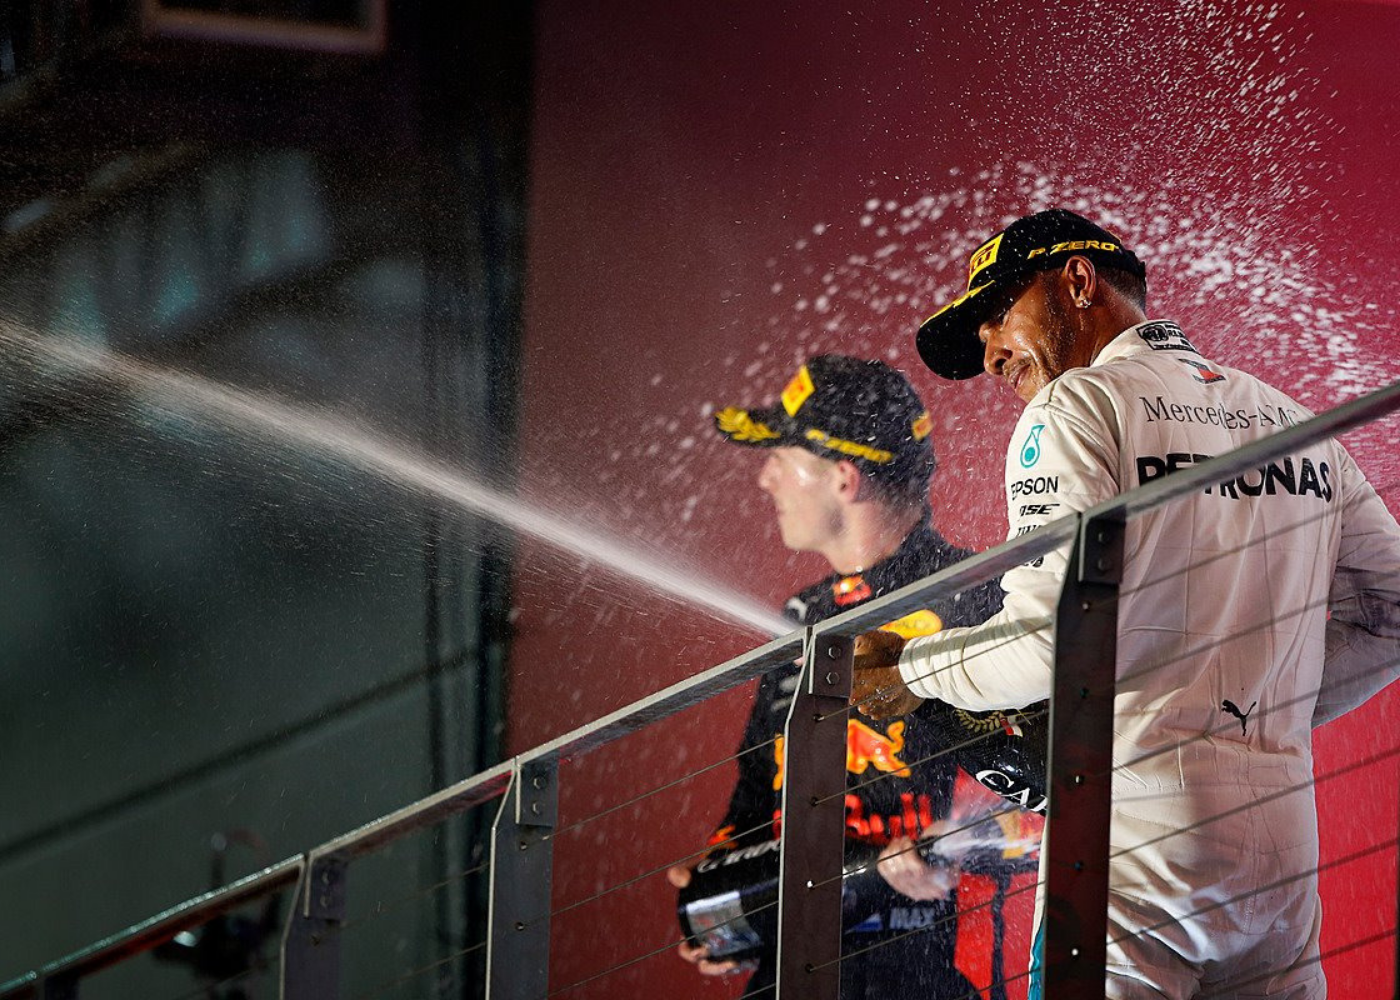 Lewis Hamilton was last year's winner | Singapore Grand Prix